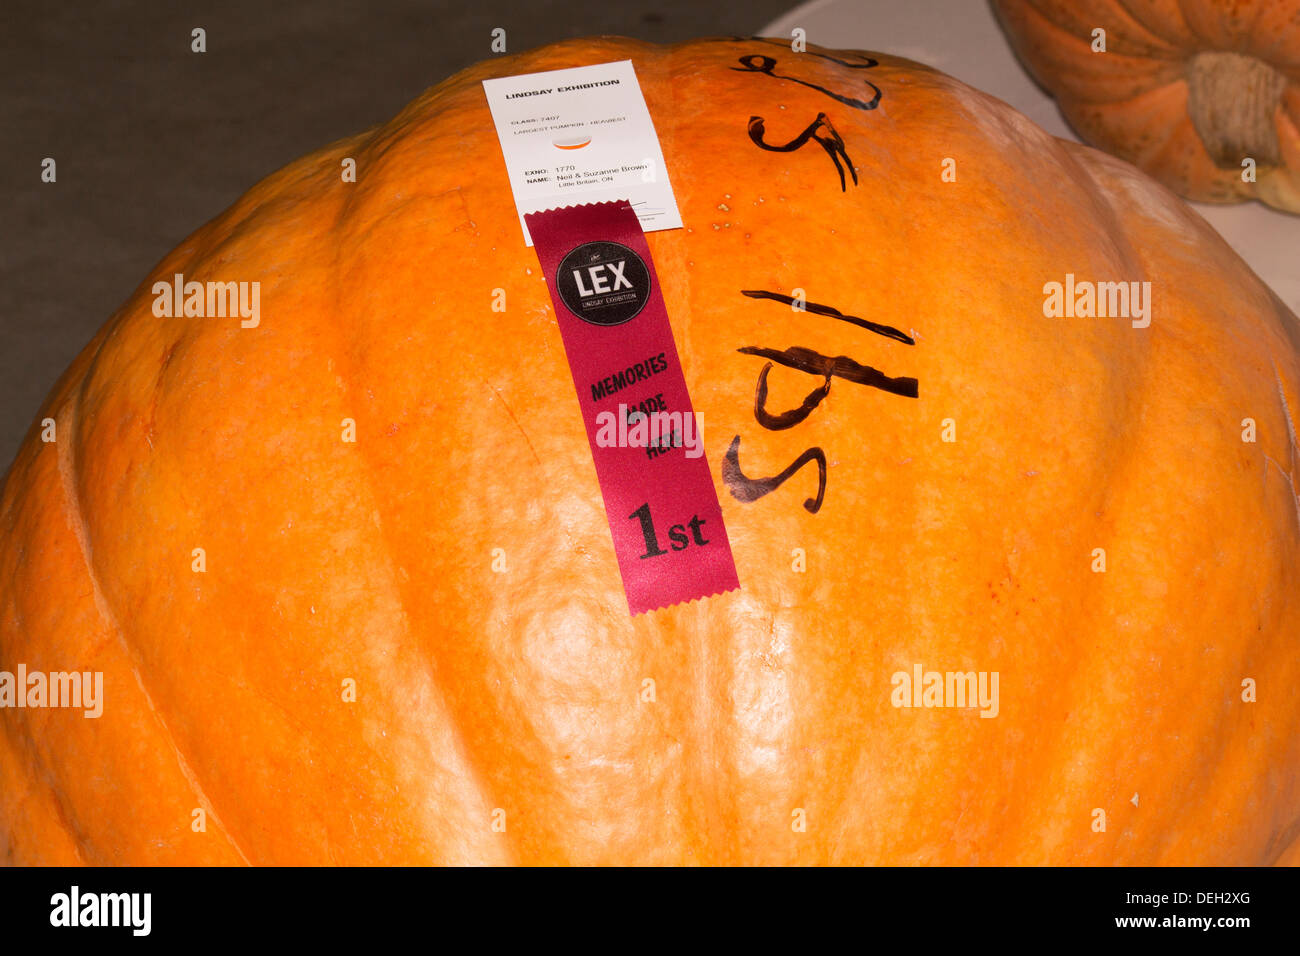 largest-heaviest-pumpkin-first-prize-at-lindsay-fair-and-exhibition-DEH2XG.jpg